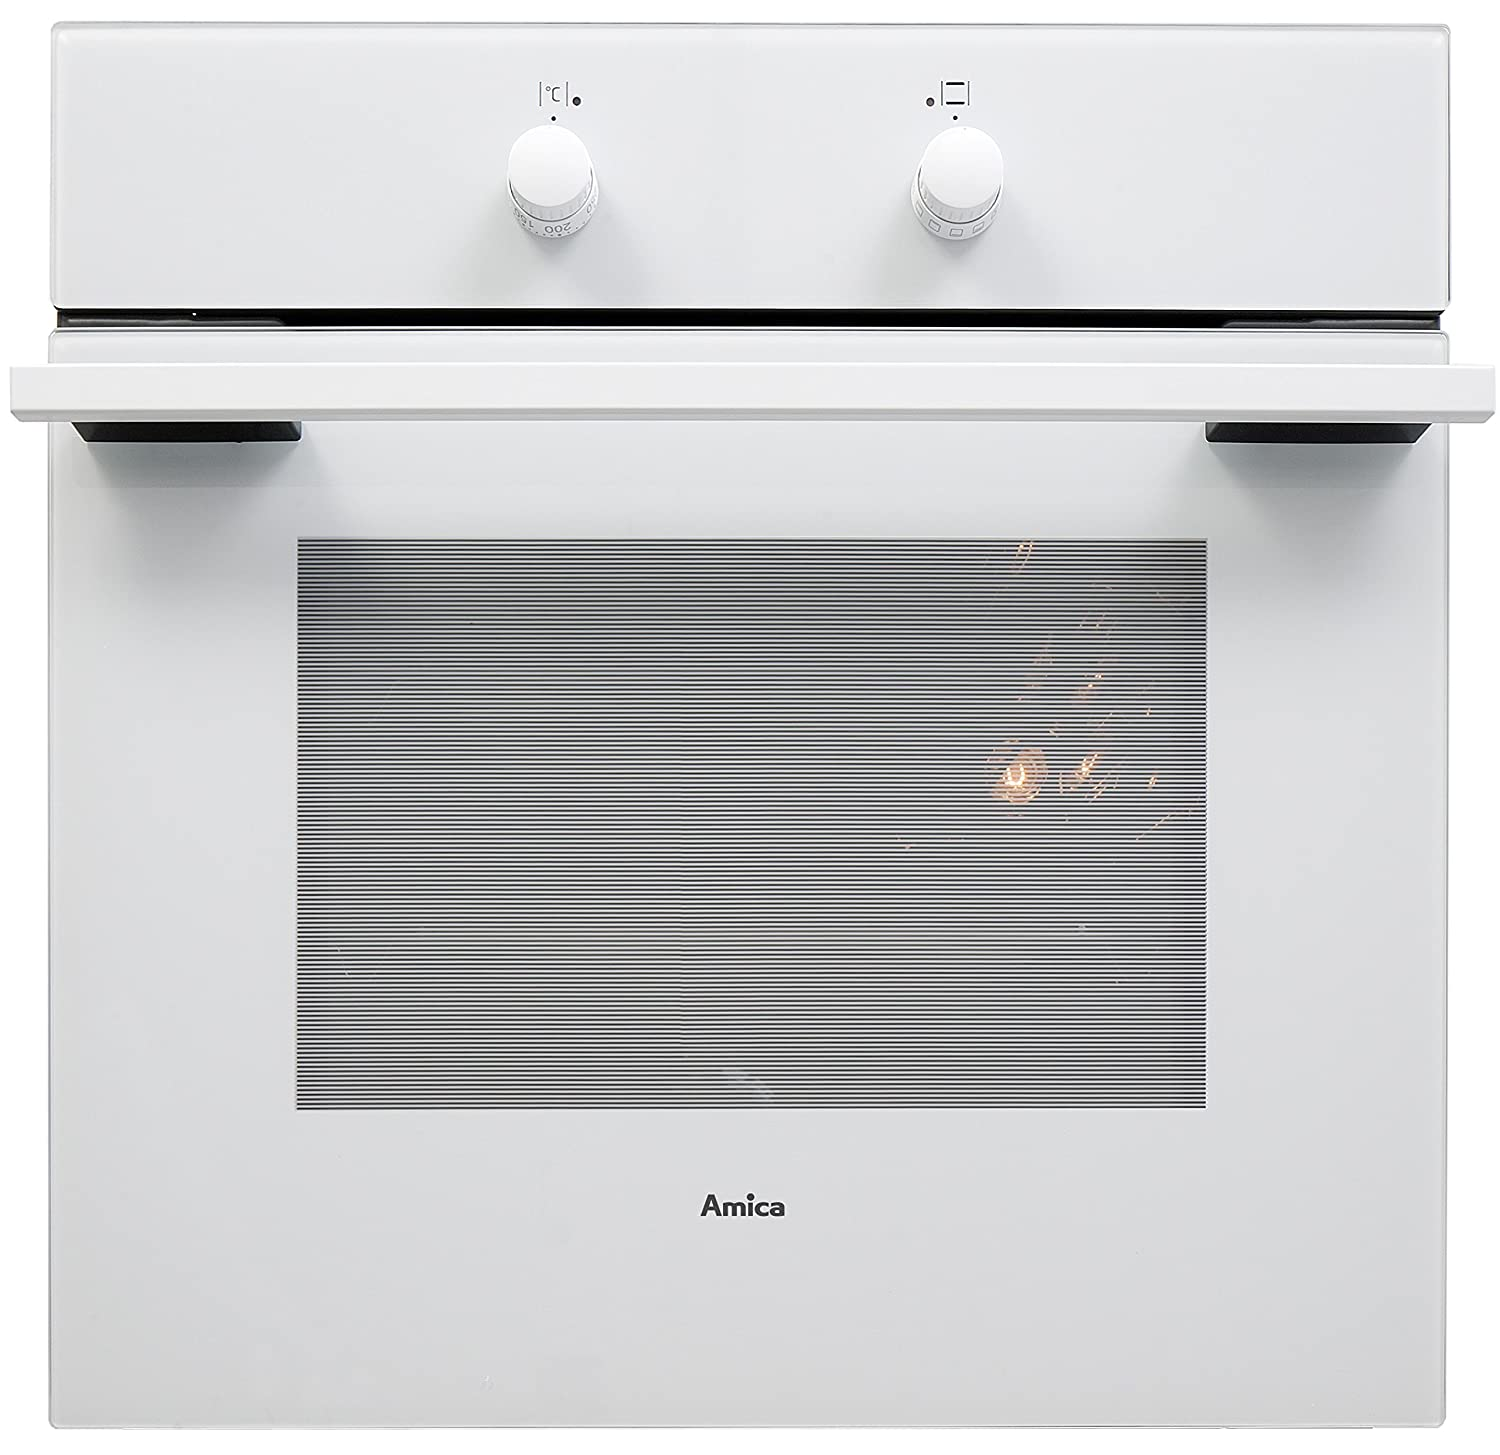 Amica 10533W Built-in Multifunction Oven, 62 Litre, White [Energy Class A]